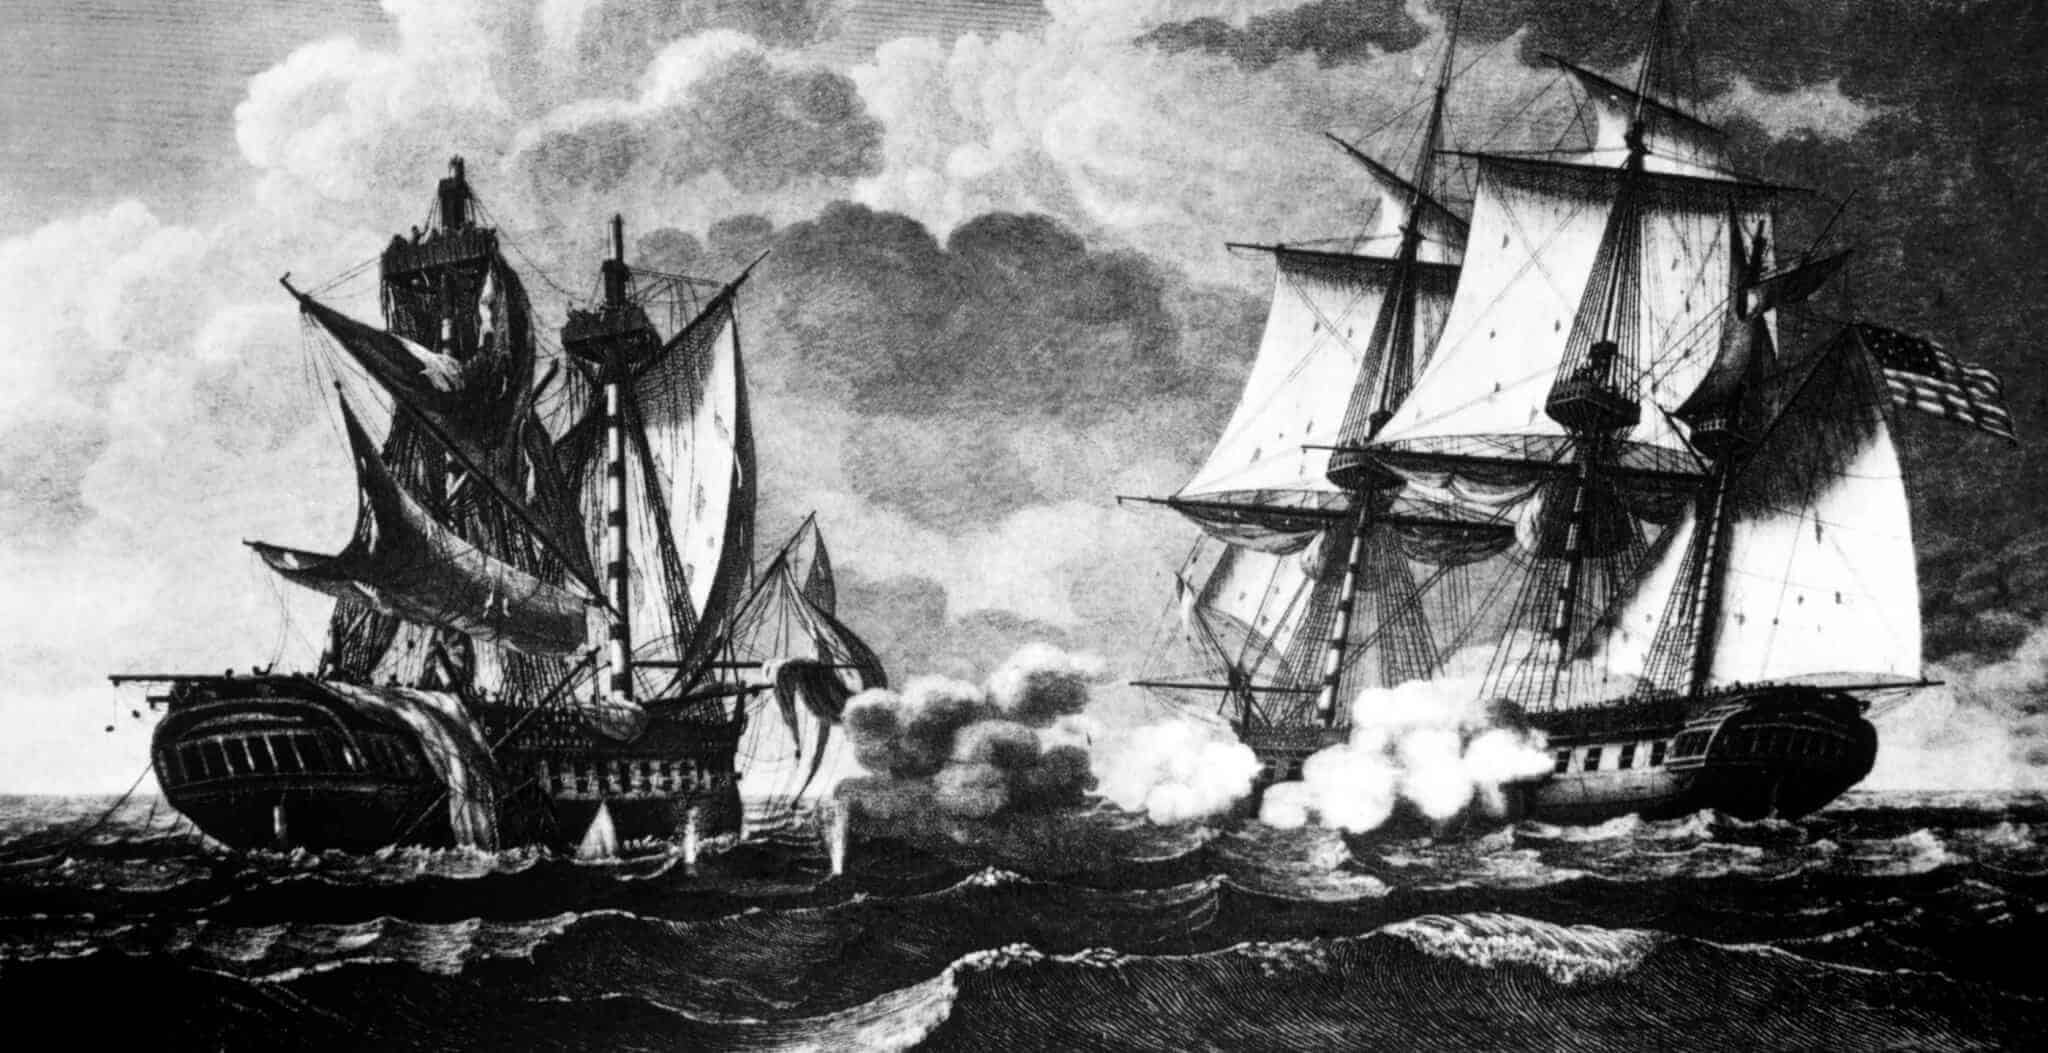 The War of 1812 and the burning of the White House